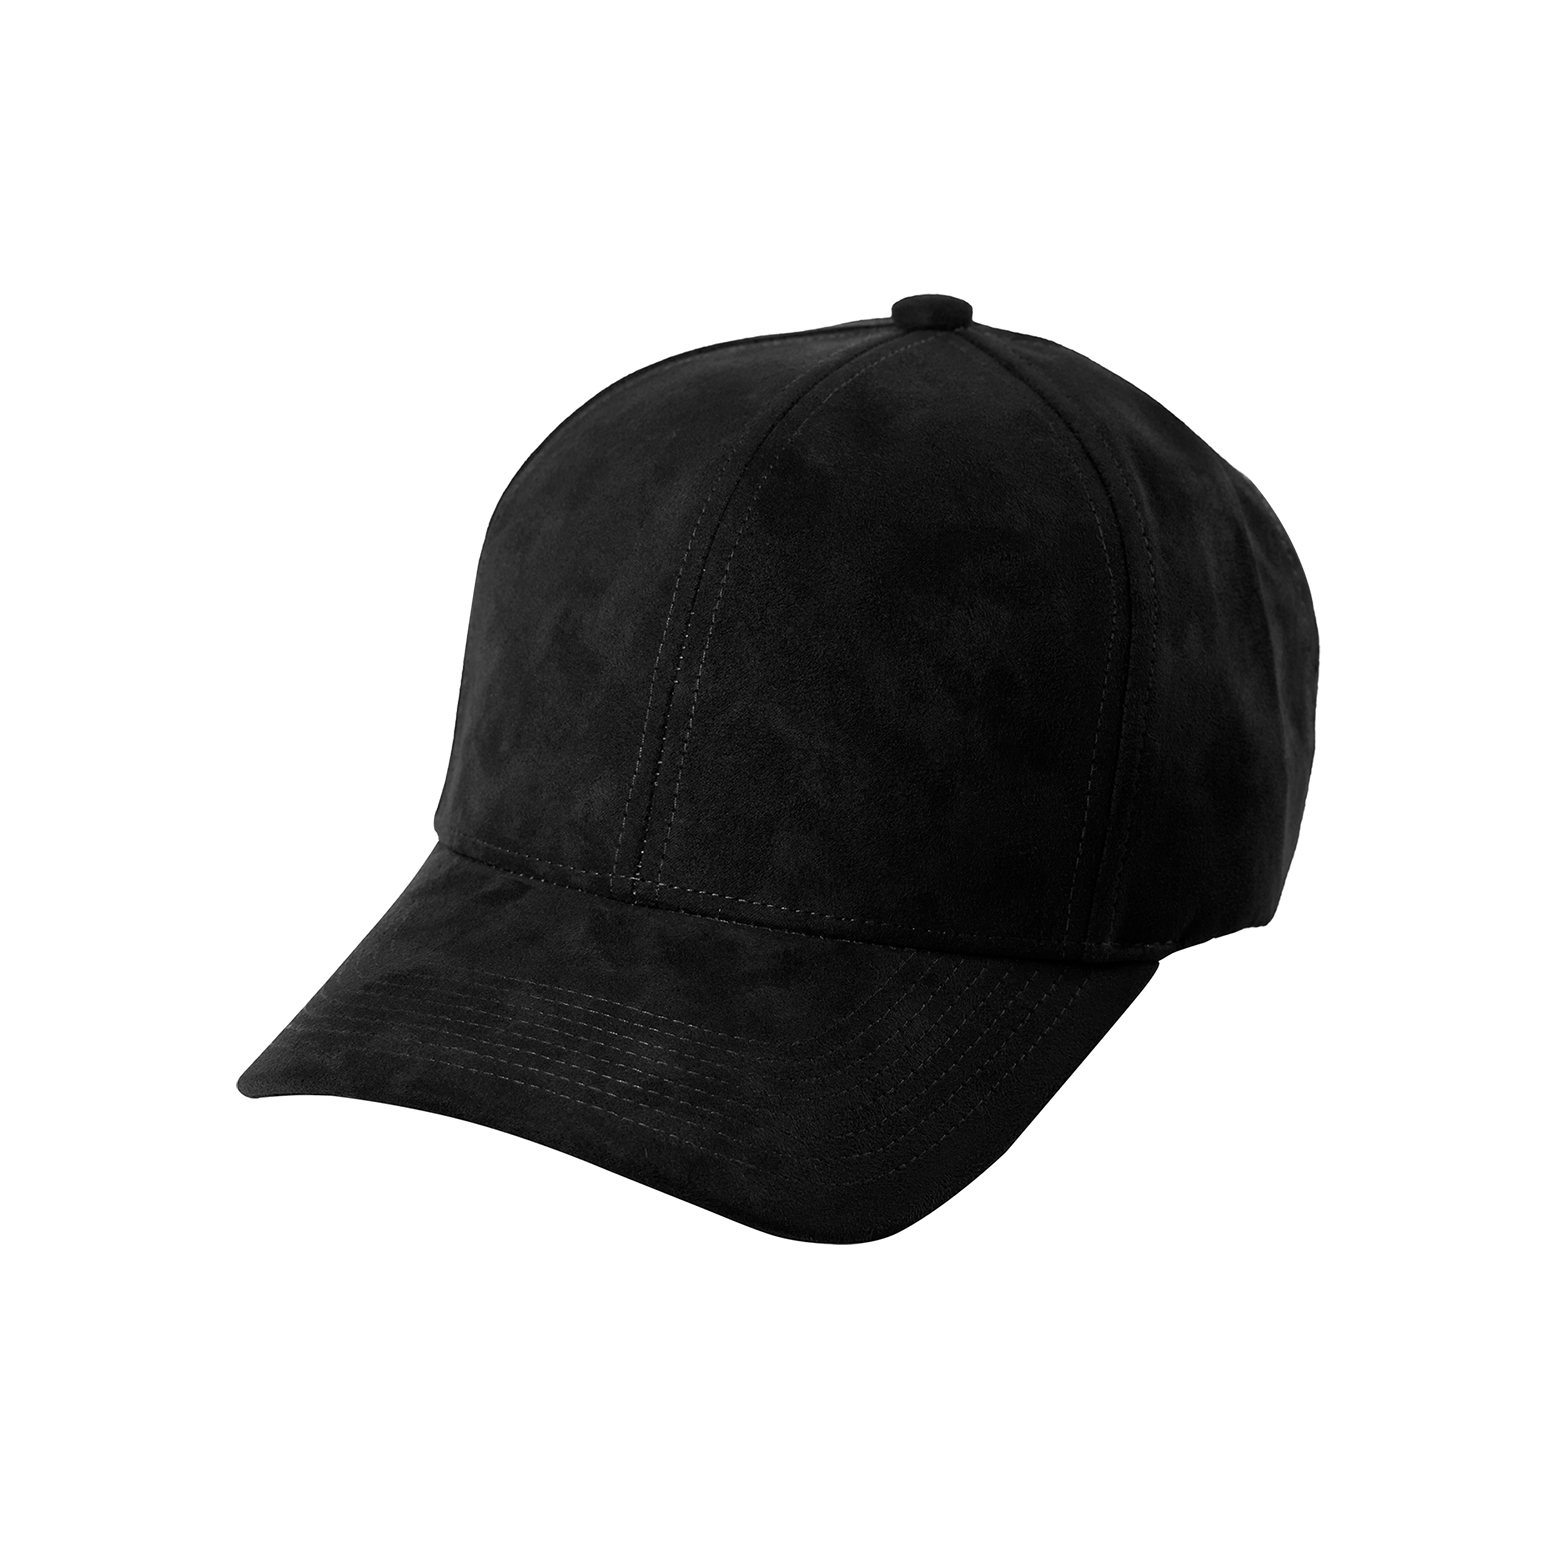 BASEBALL CAP BLACK SUEDE FRONT SIDE